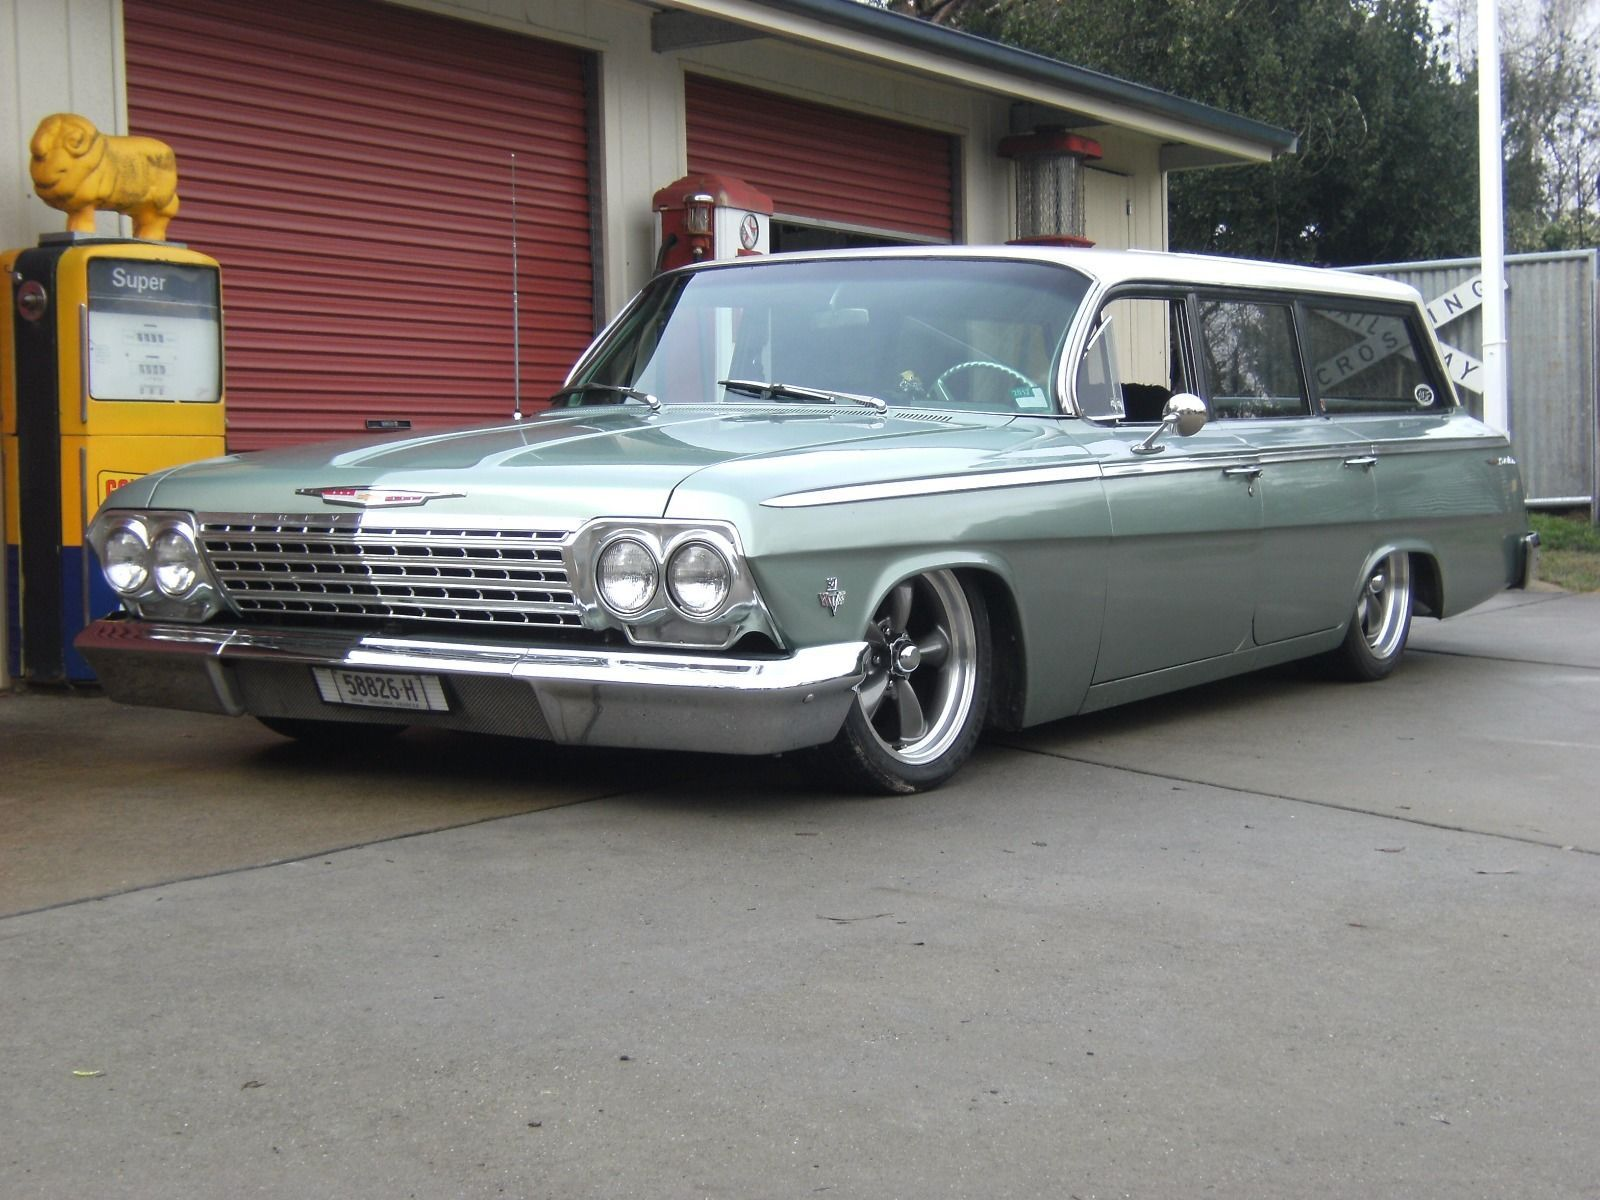 1962 Lhd Chev Impala Station Wagon Recent Import These Were Sold